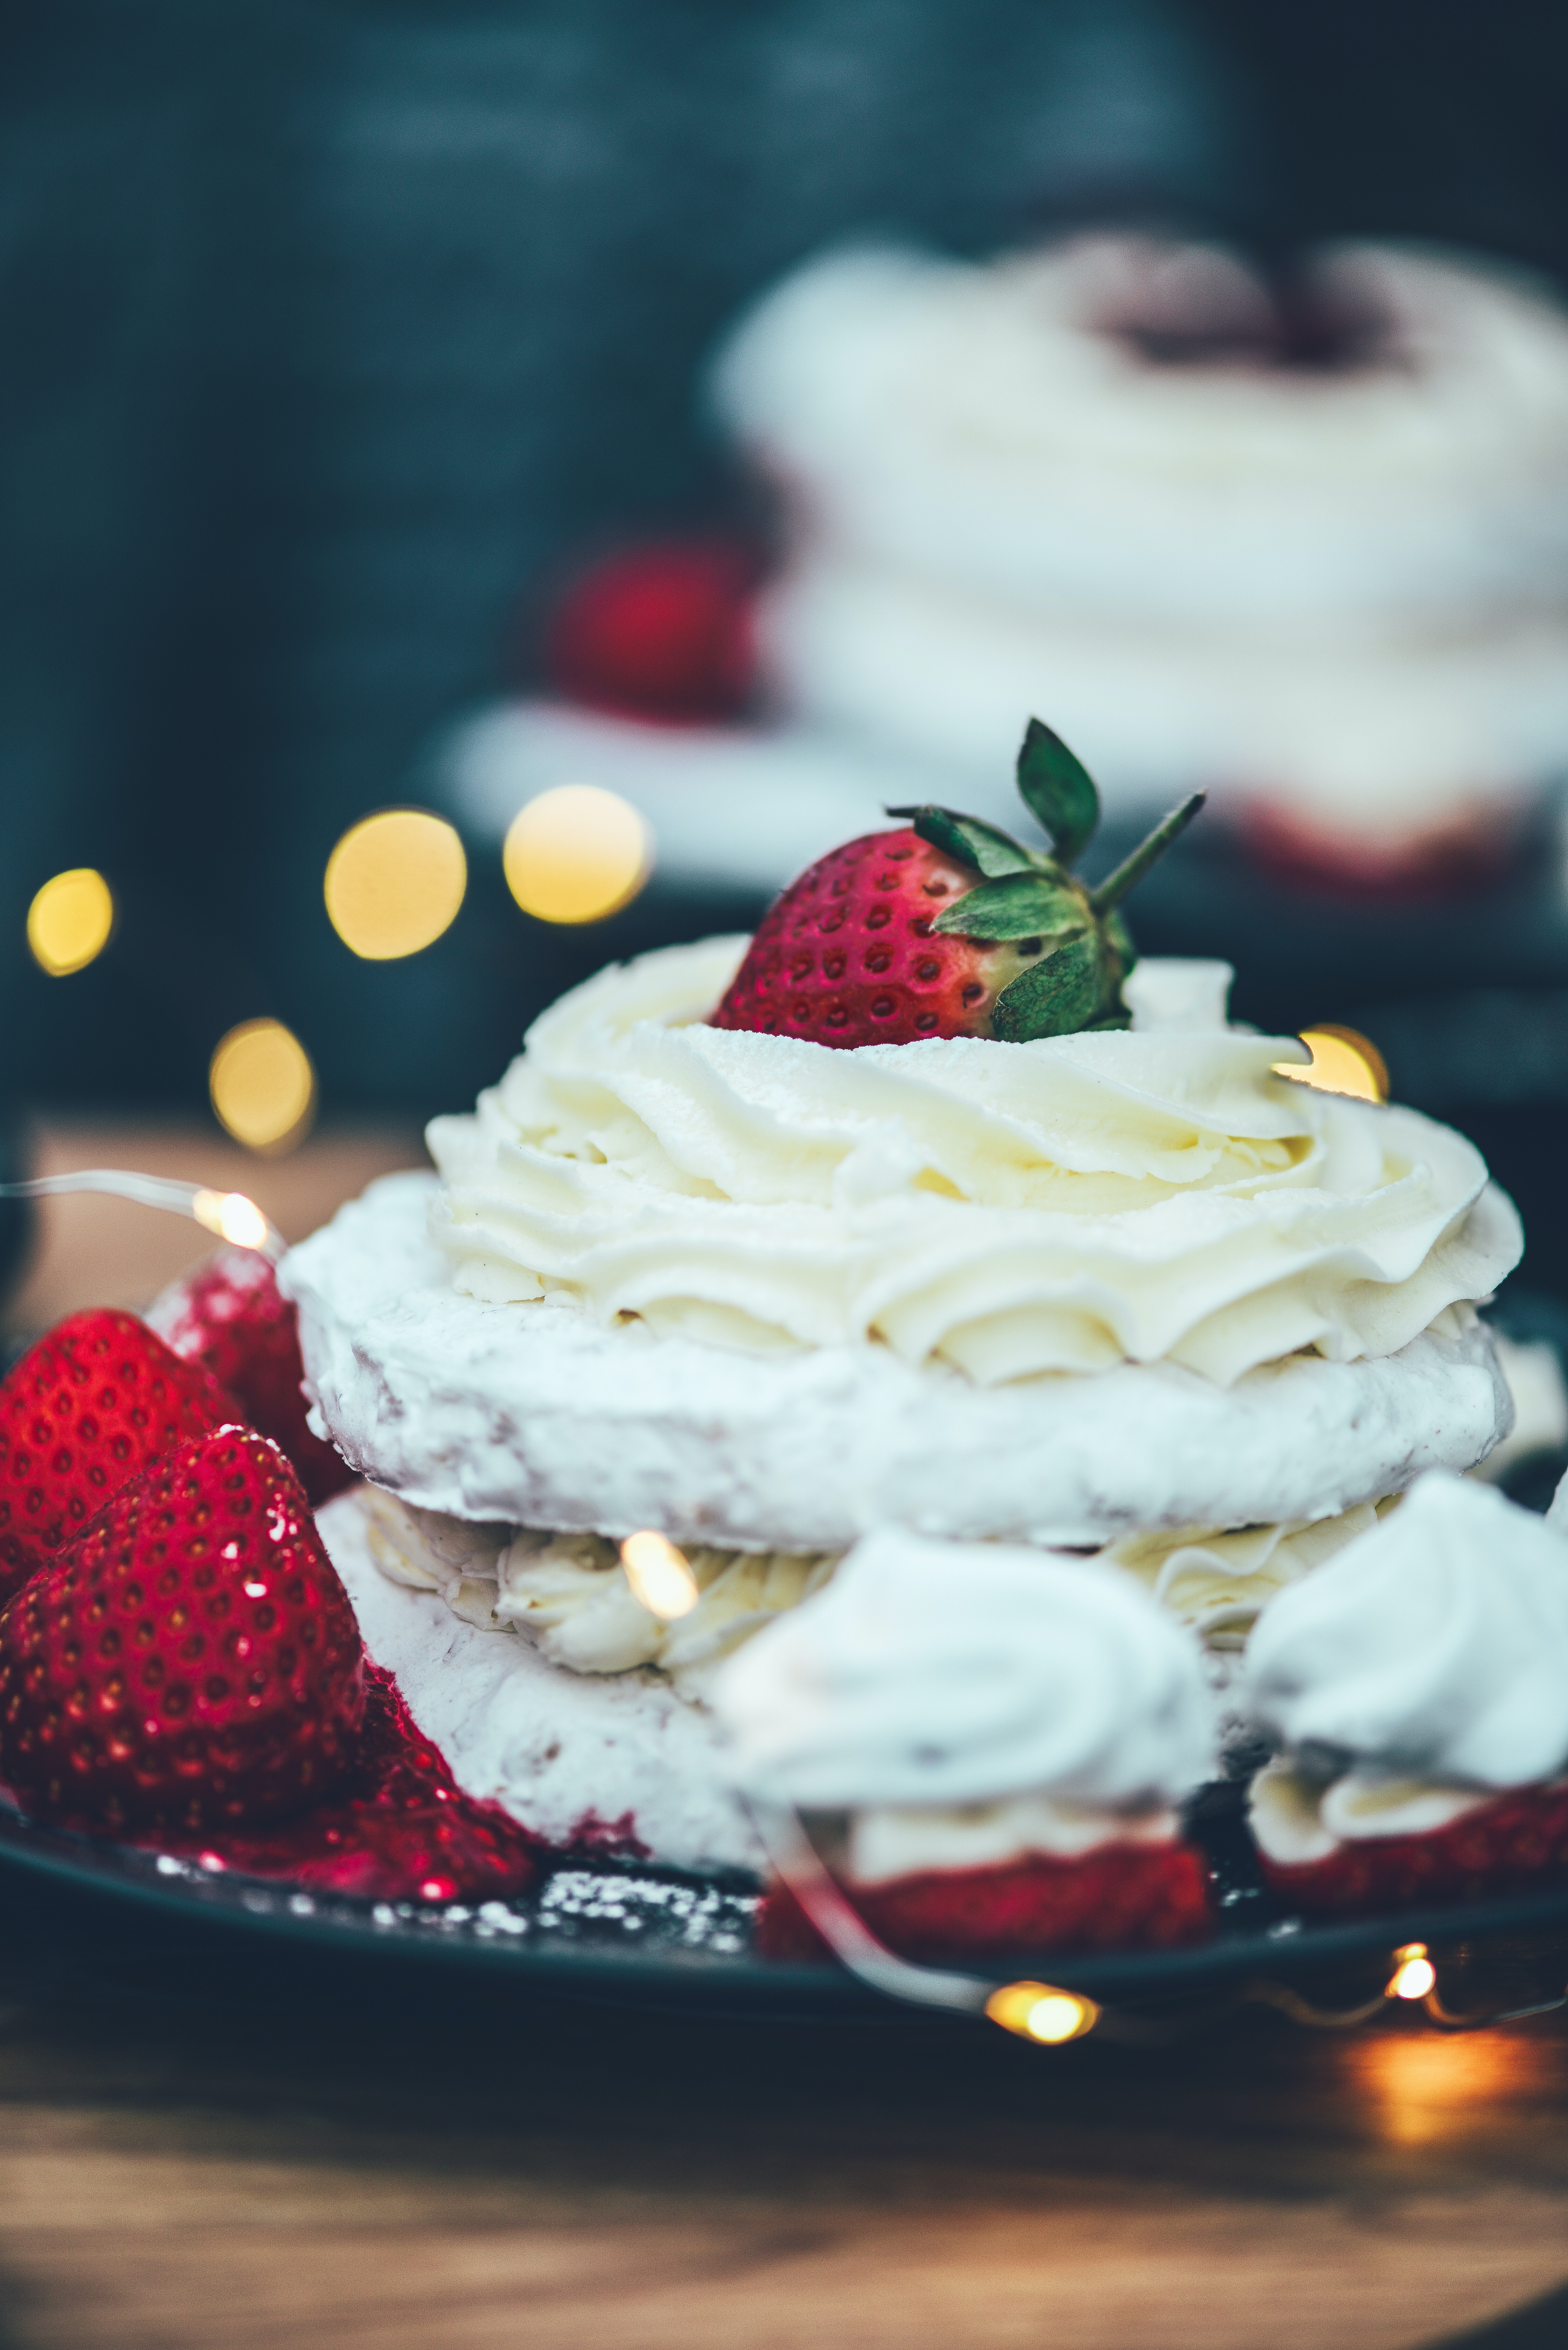 cake with icing and strawberries